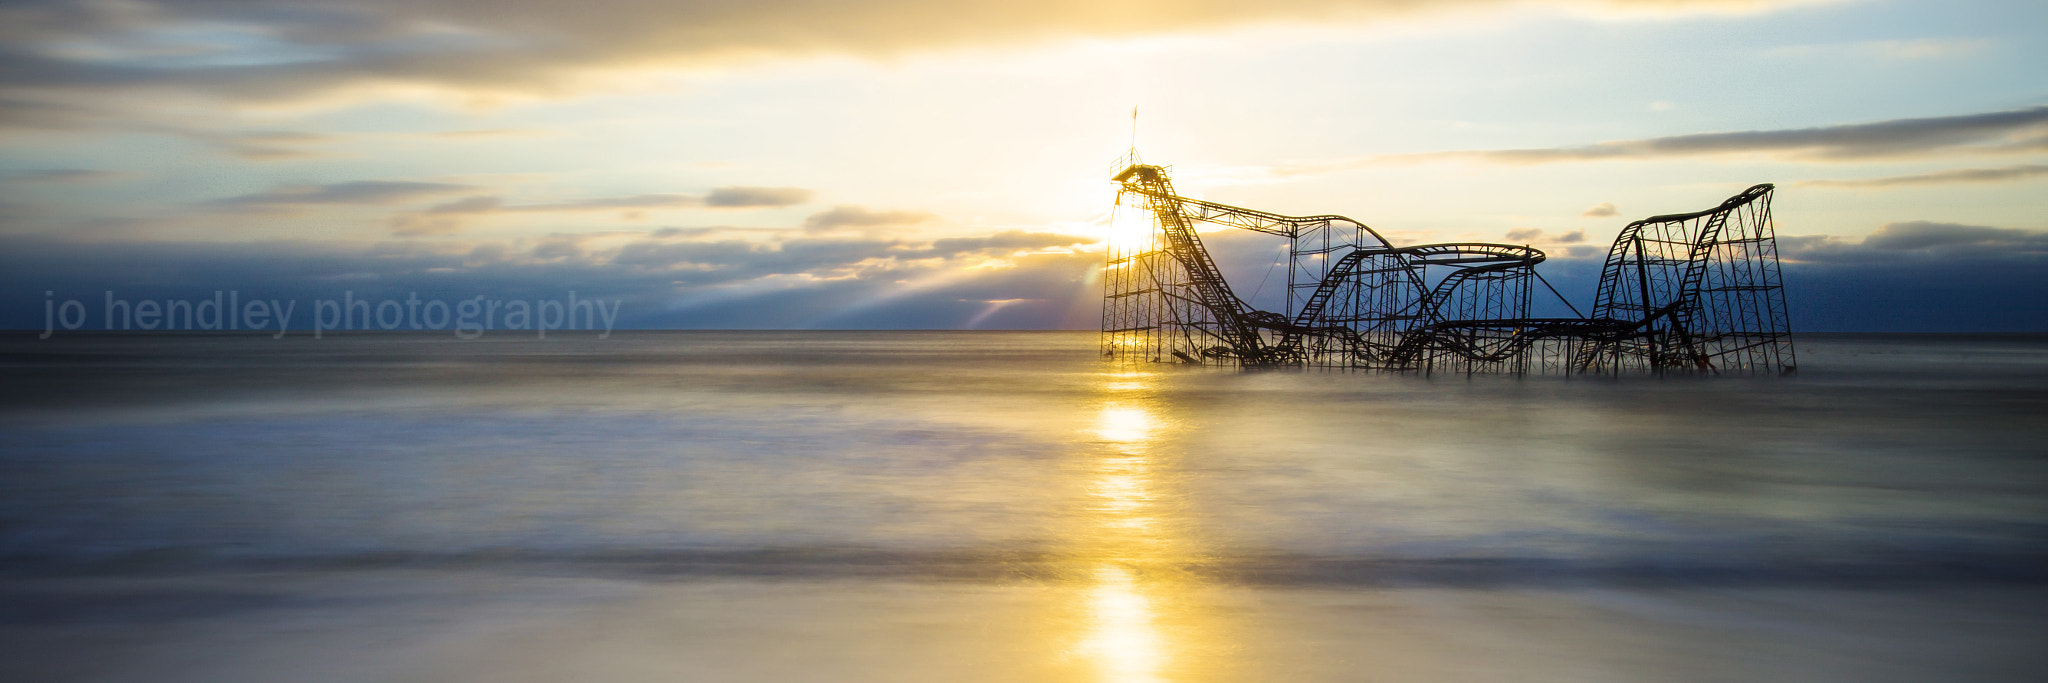 Photograph Sunrise At The Coaster by Jo Hendley on 500px